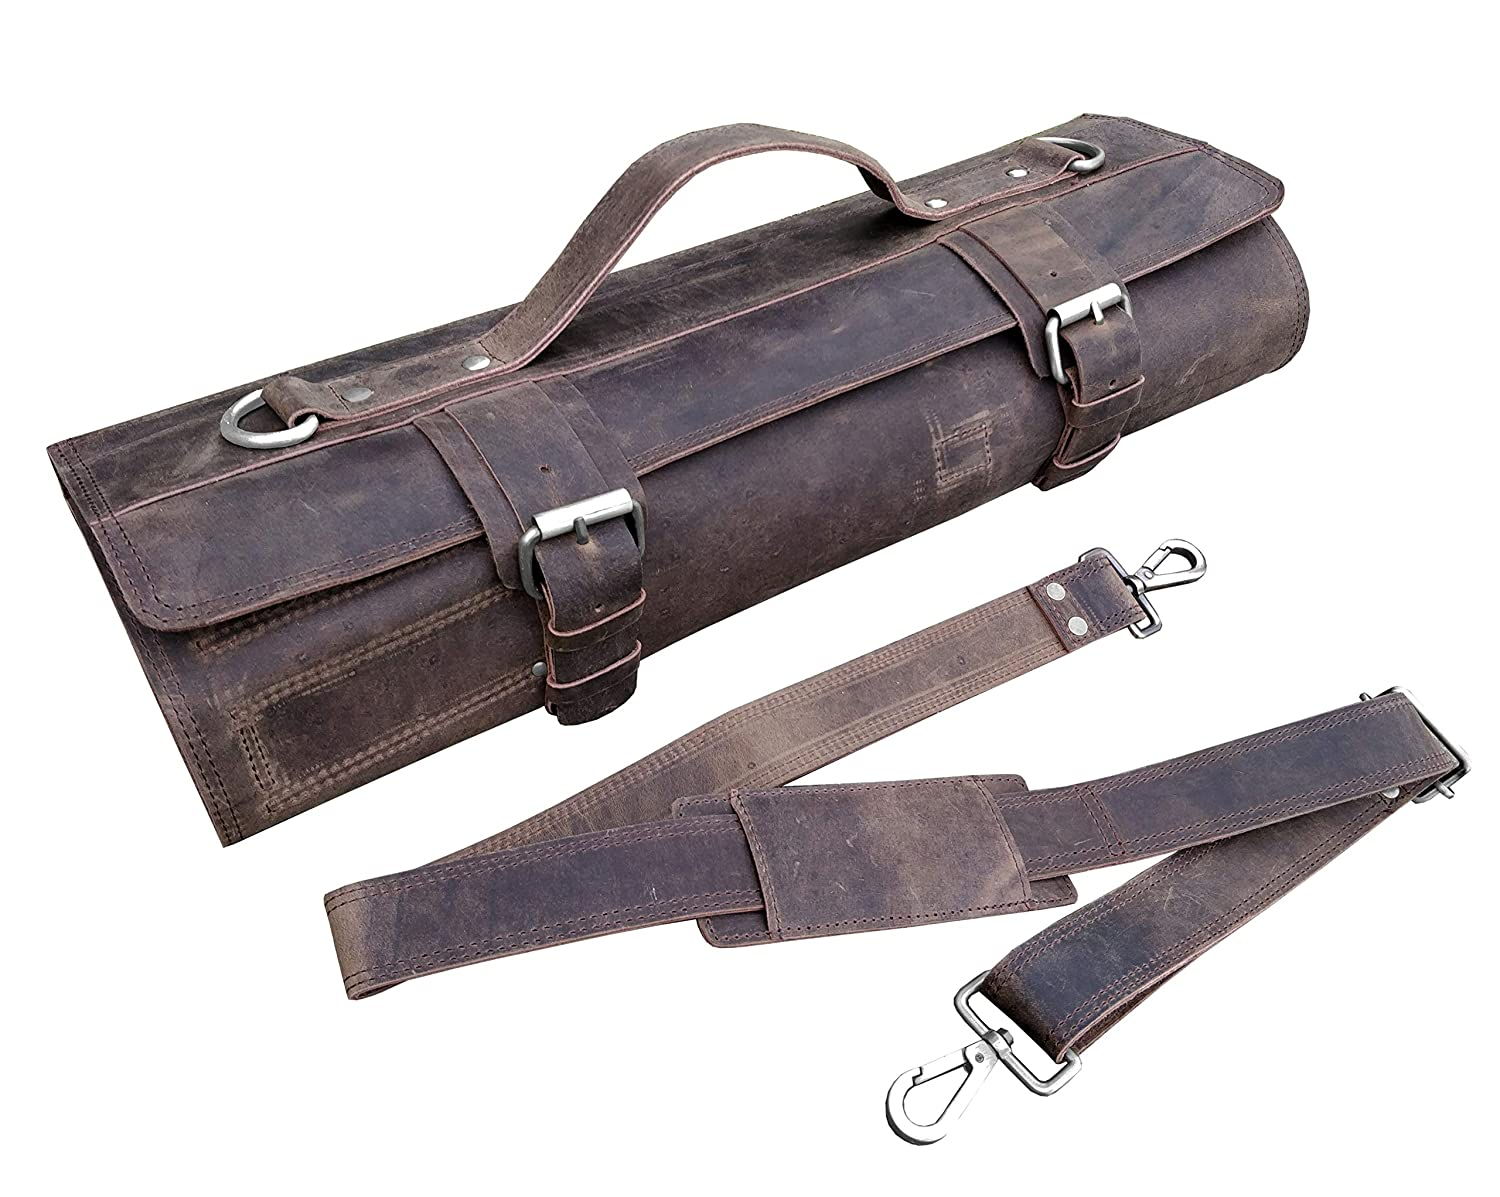 One Leaf - Leather Knife Roll Chefs Bag Hunter Leather - Bedouin X (Silver Color Buckle)